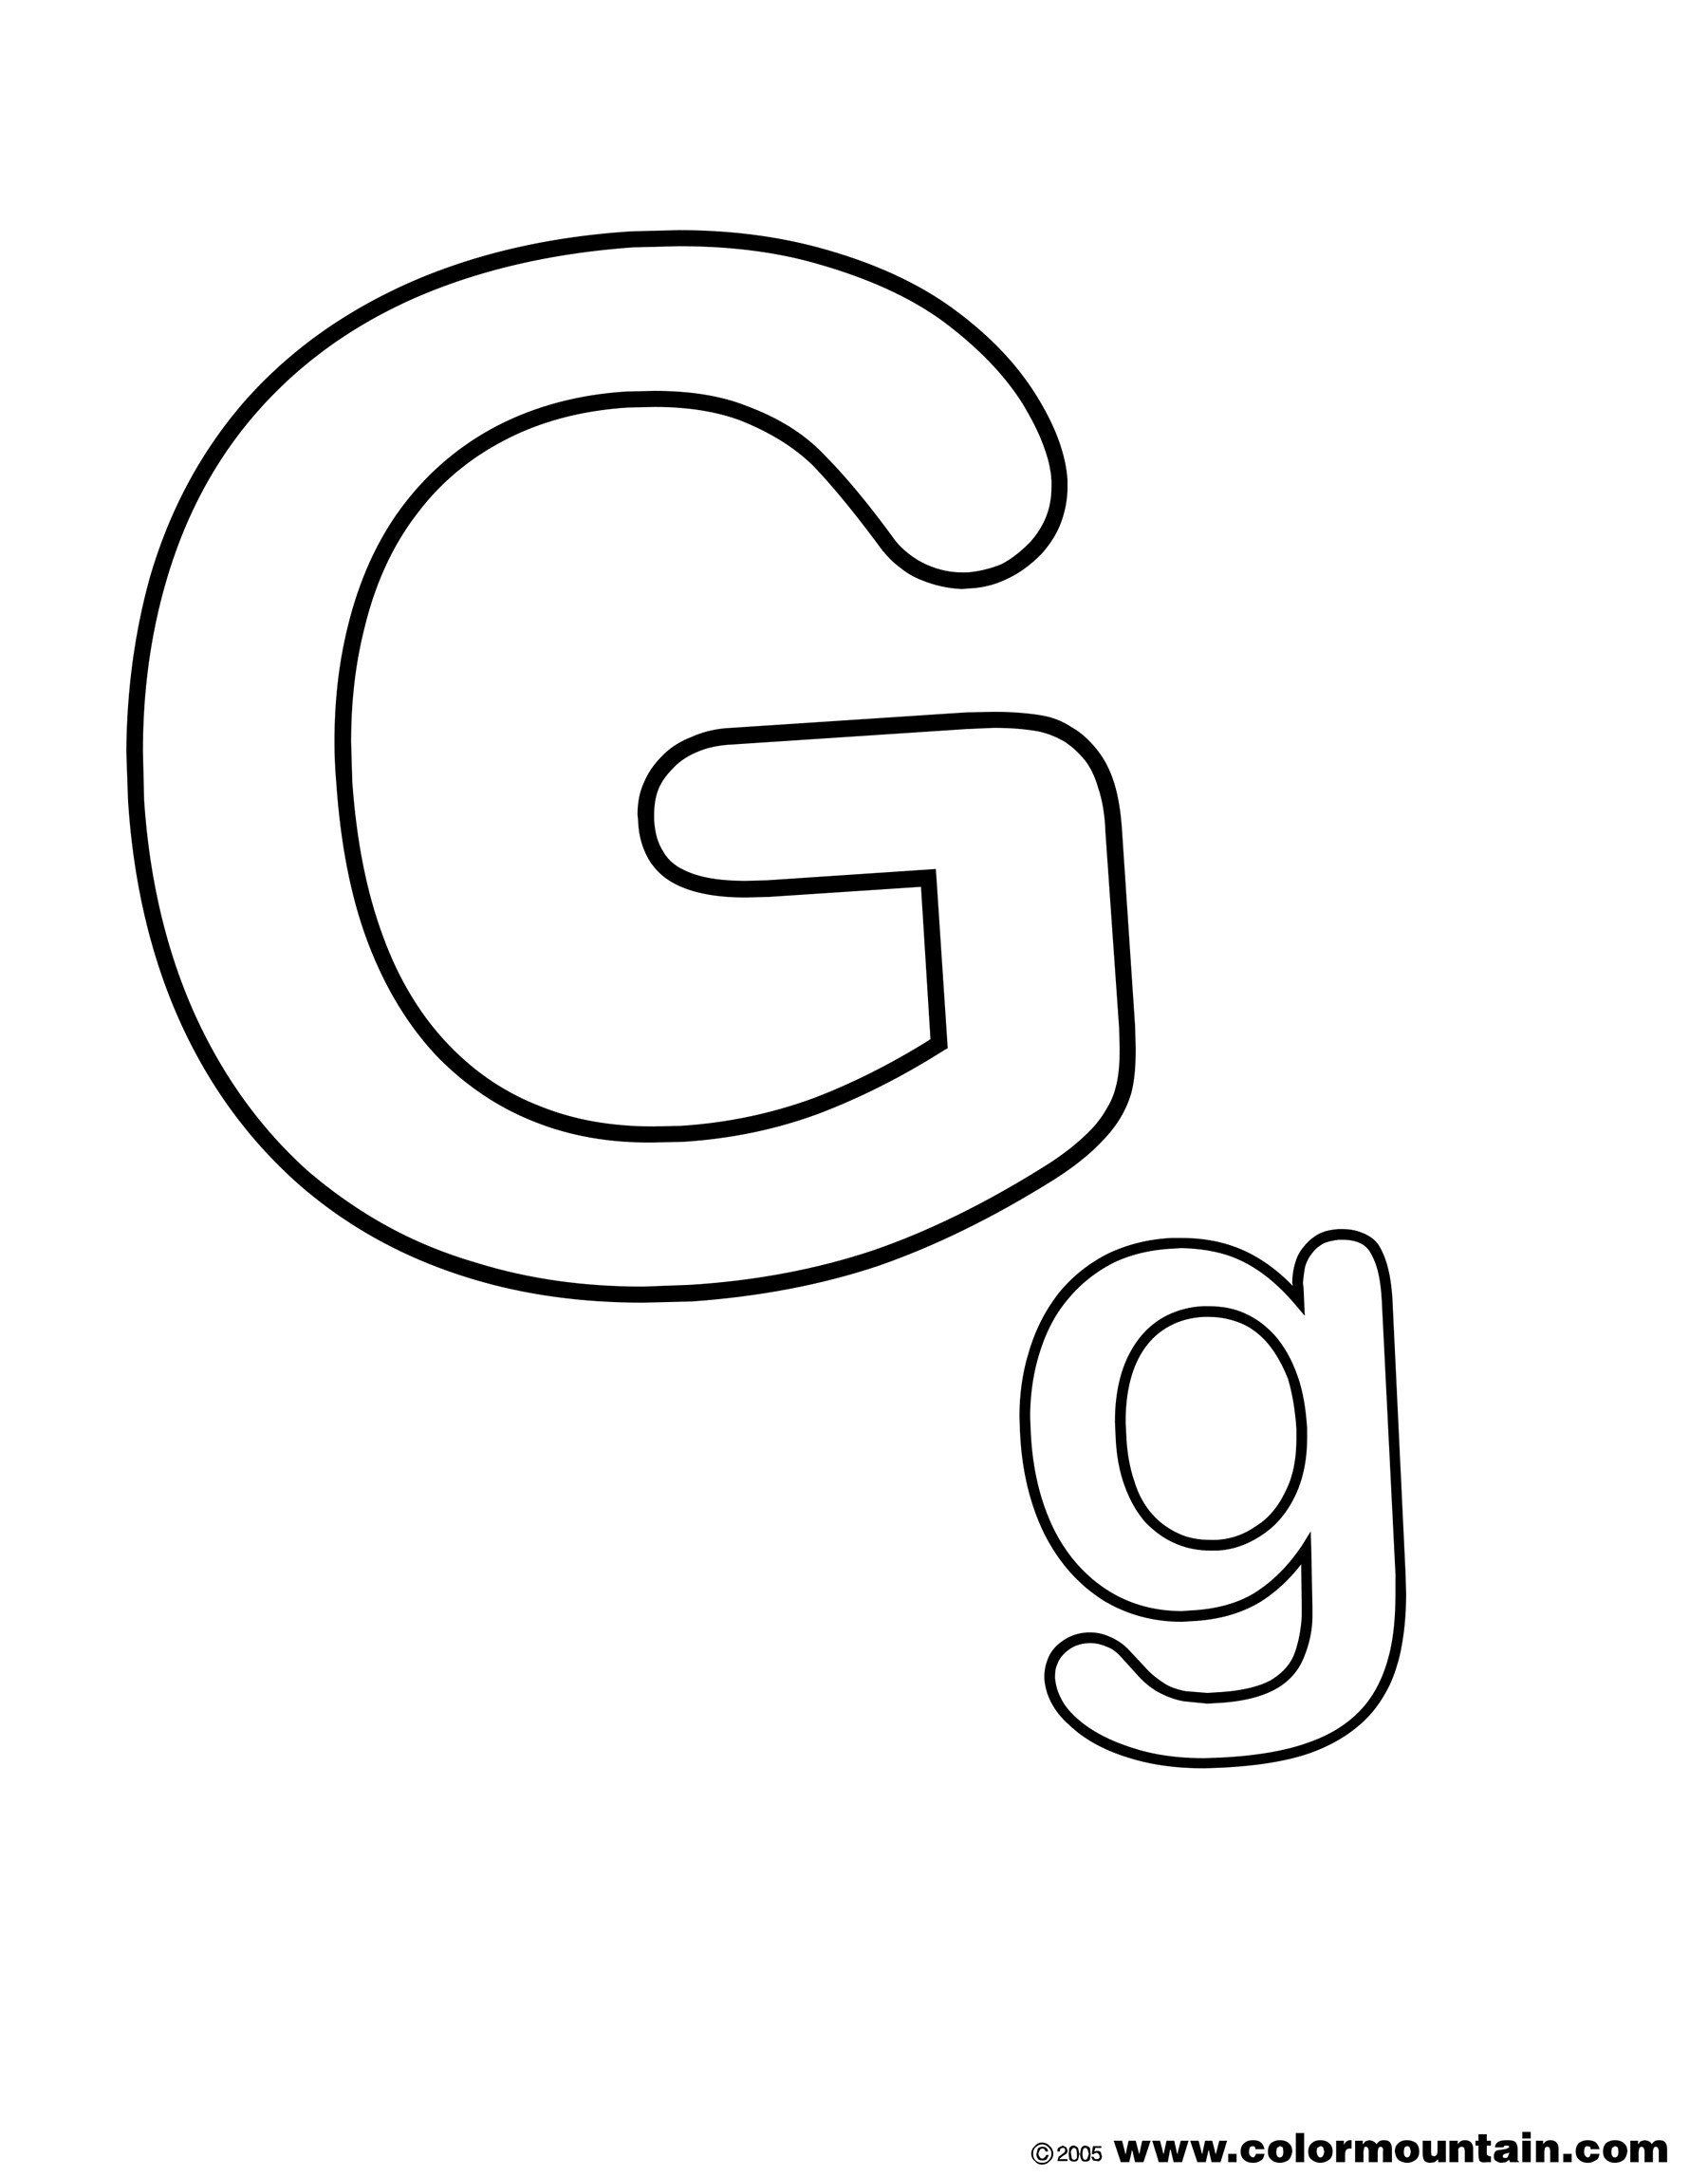 Letter G Coloring Pages The Letter G Coloring Page Create A Printout Activity Picture Letters Coloring Letters Personalized Coloring Book